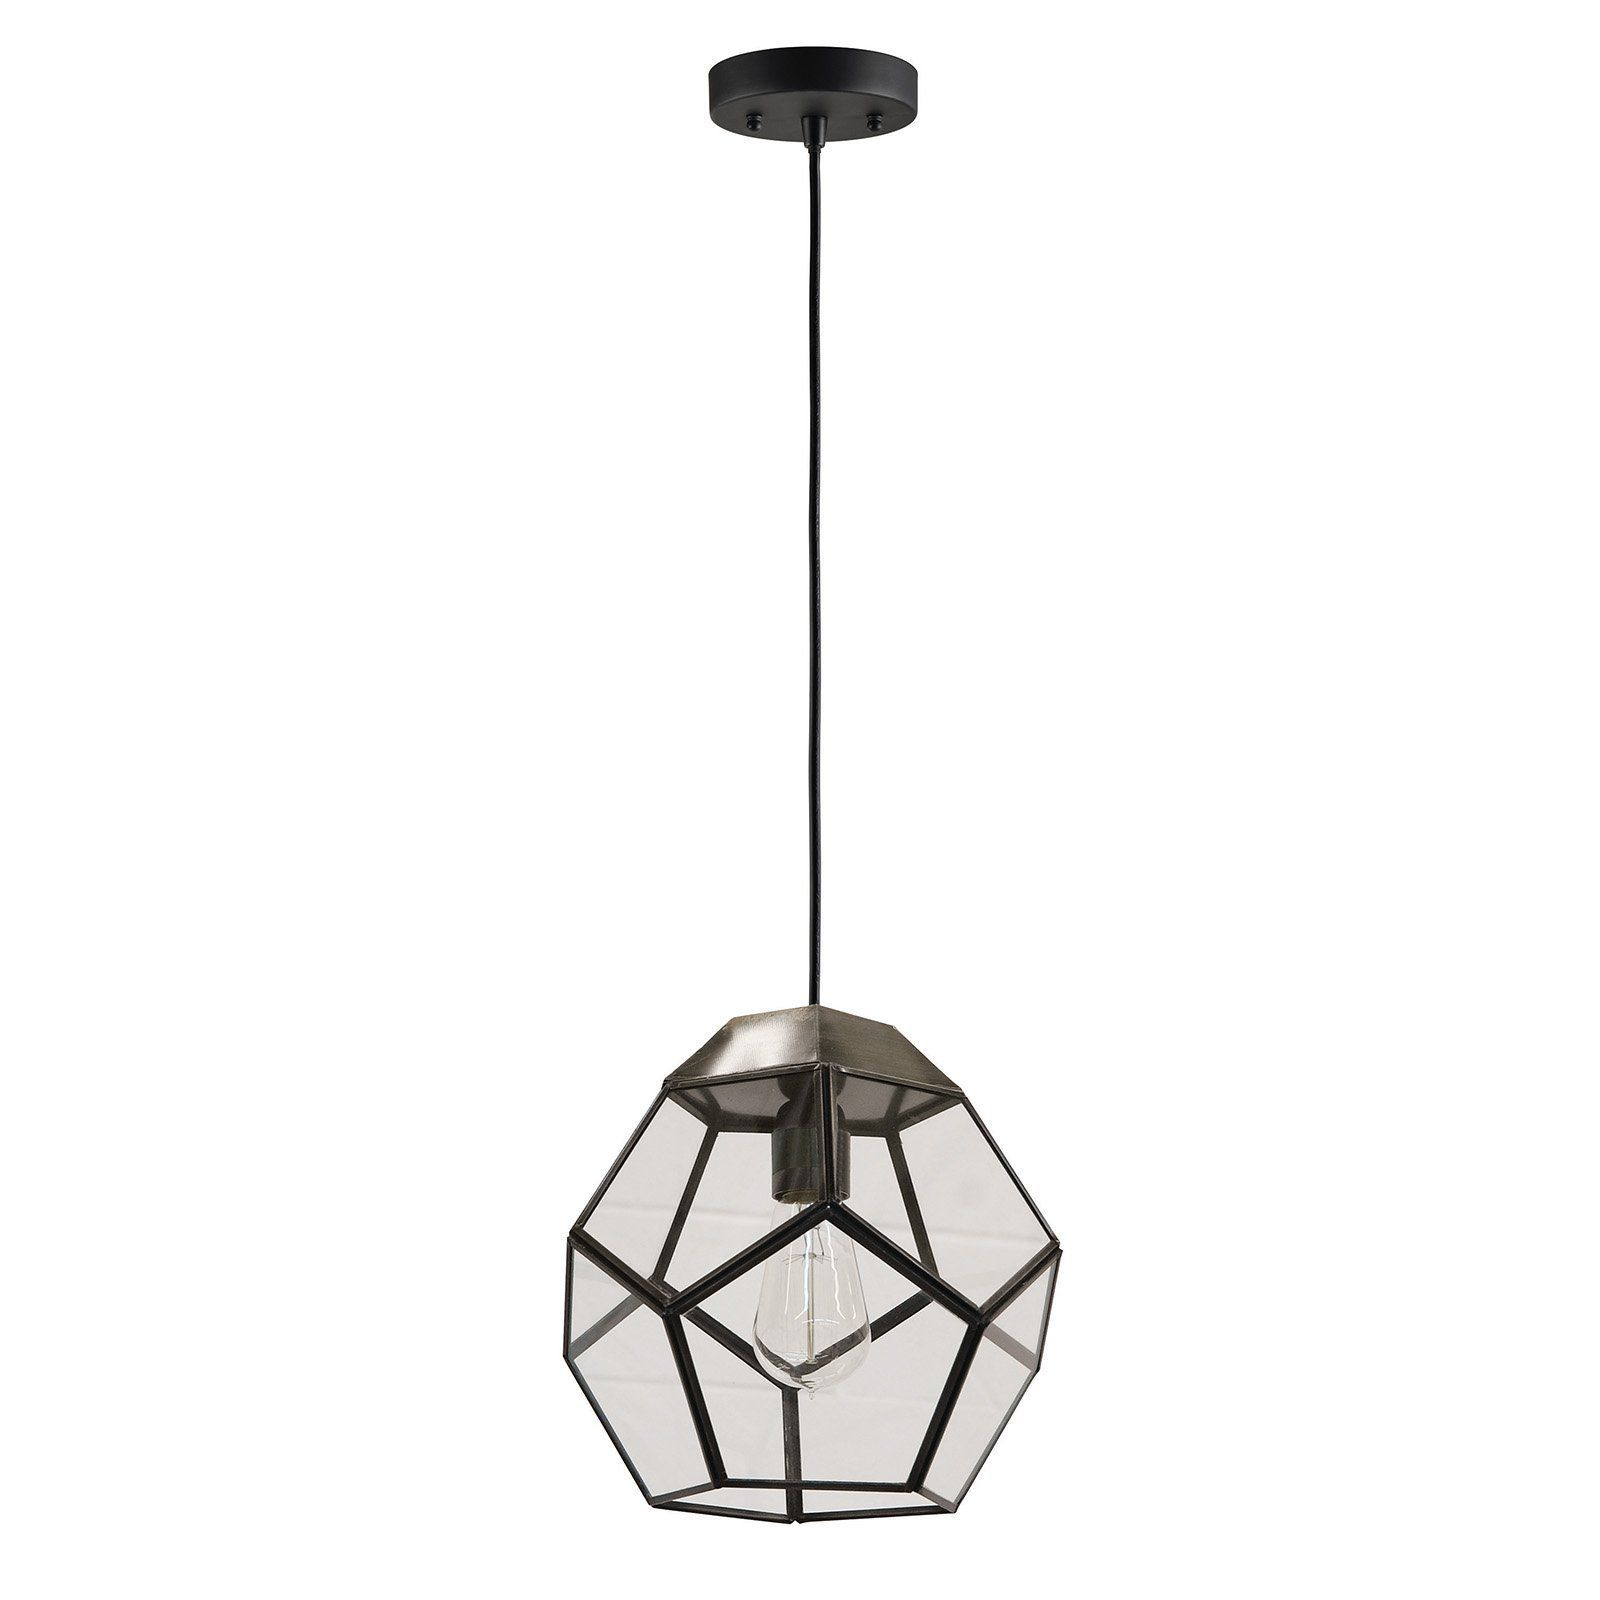 Renwil pherix lpc mini pendant light from hayneedle